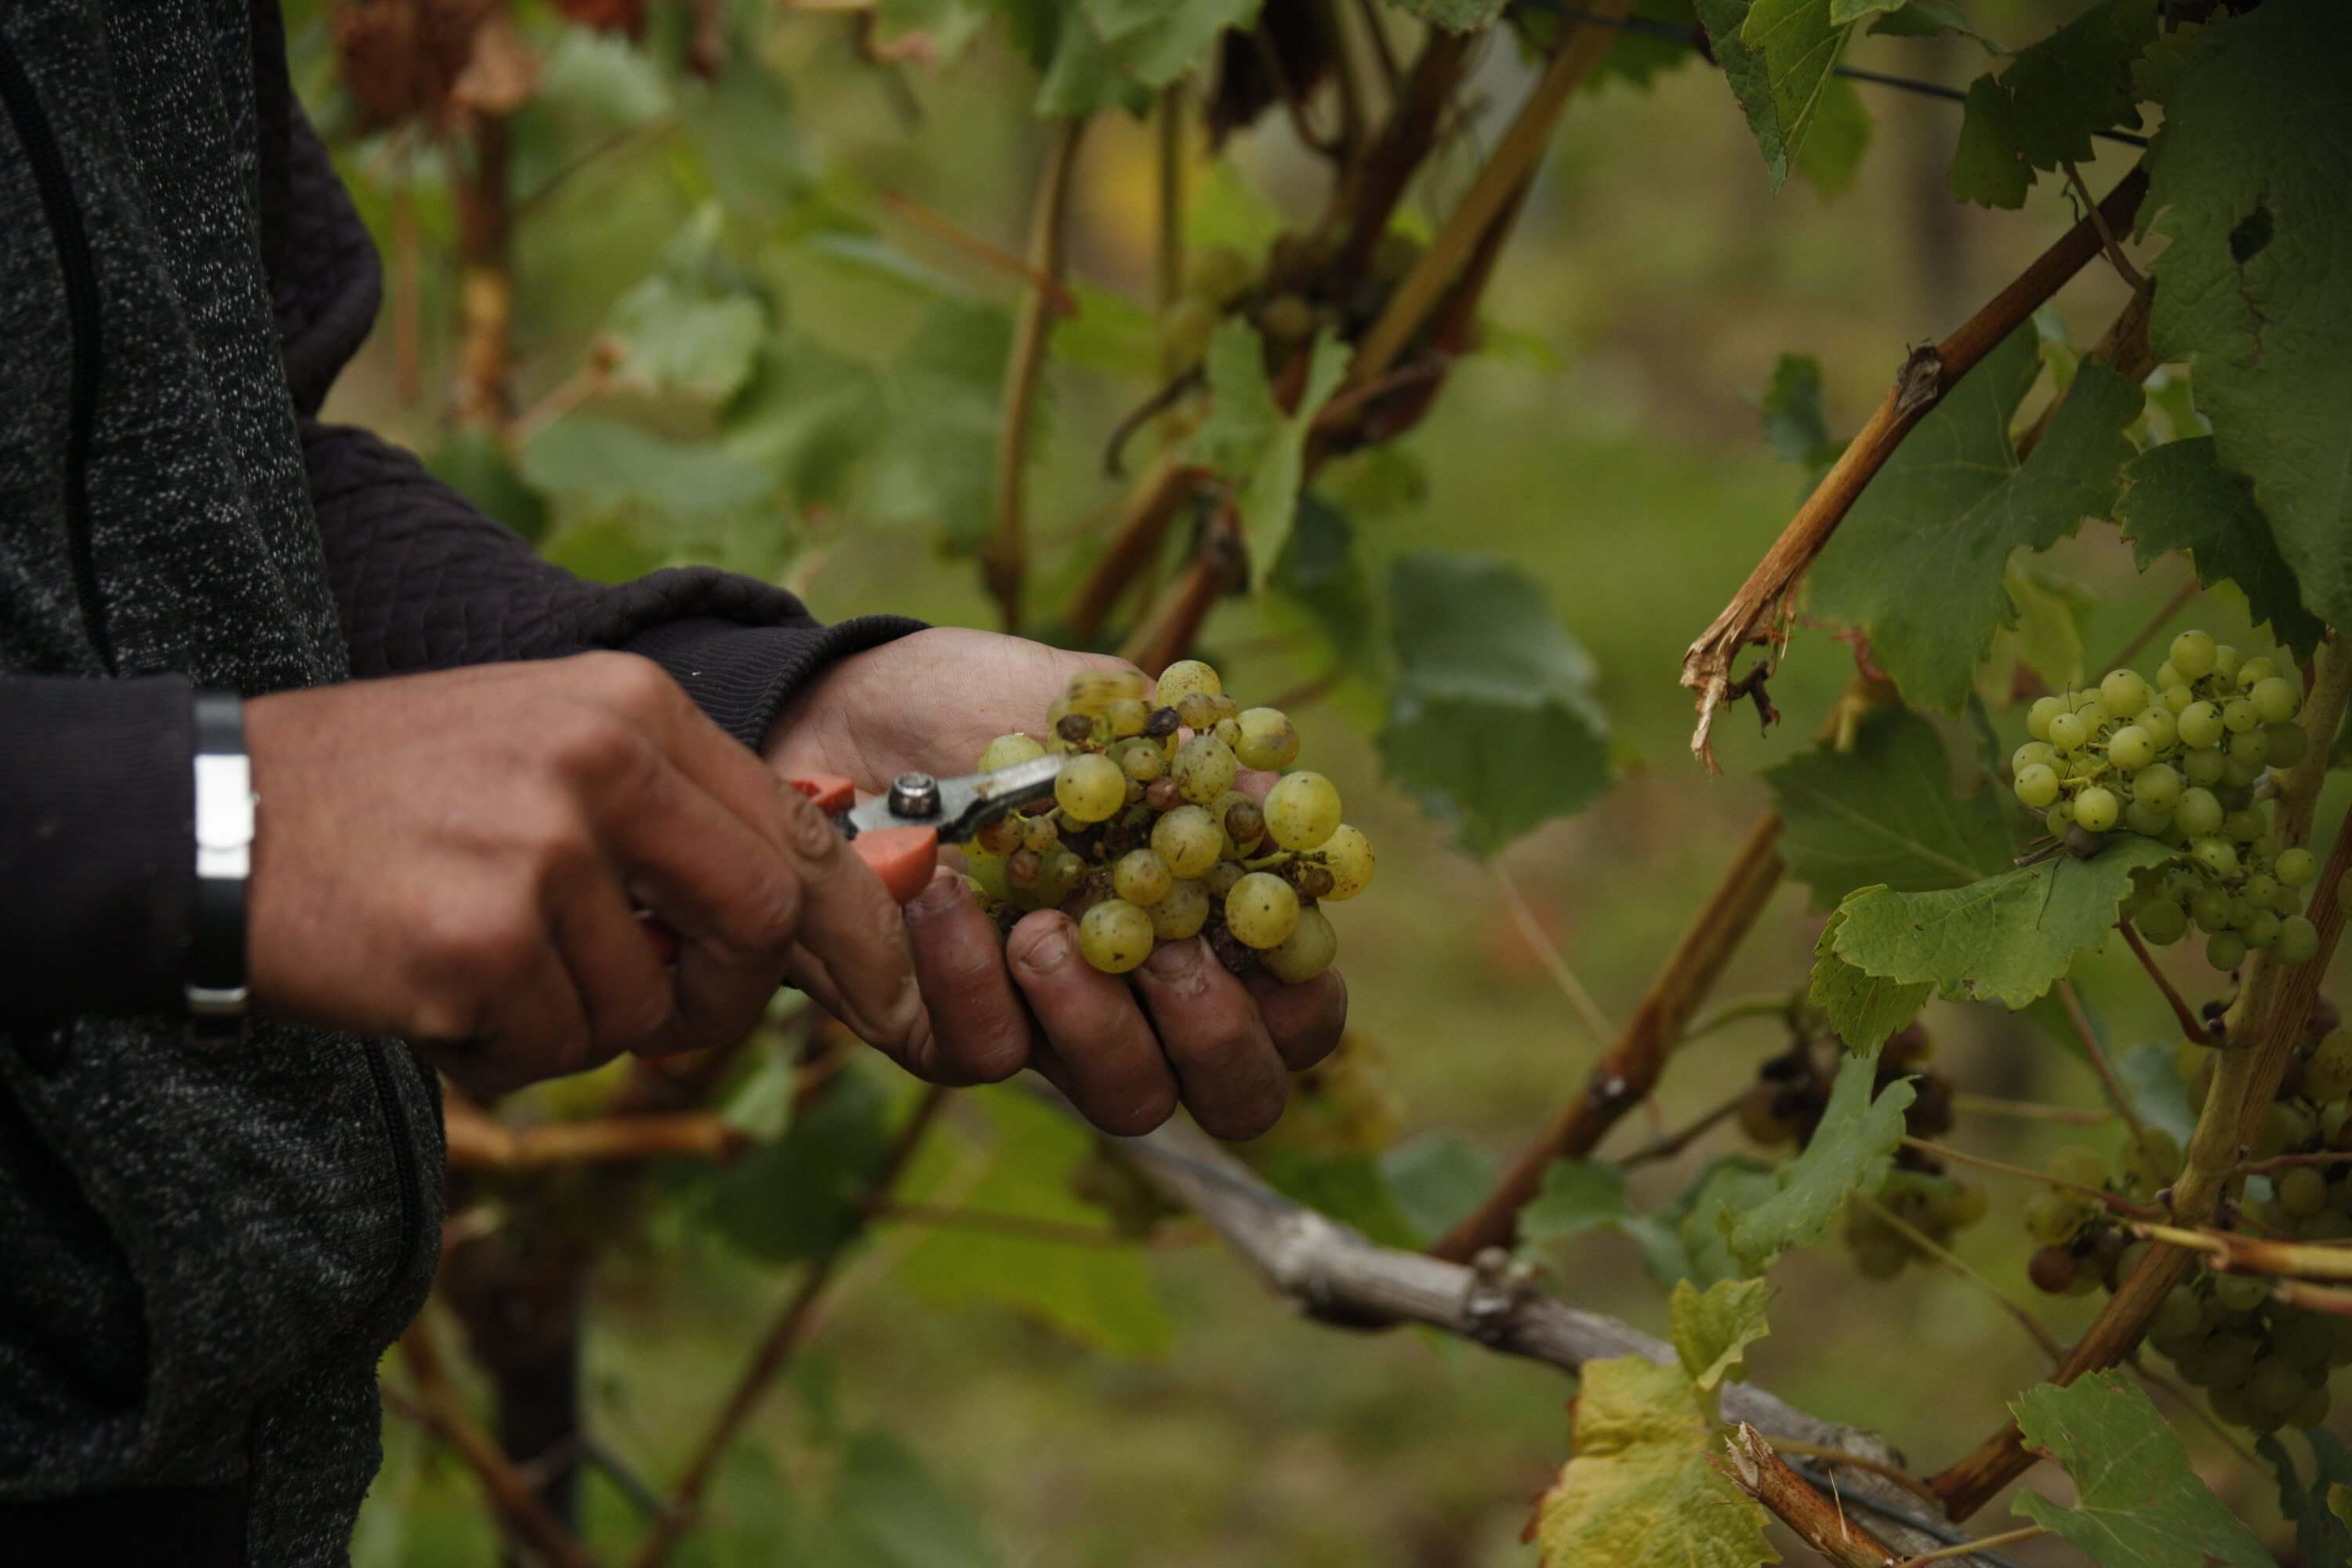 Cutting Grapes | The Mustcard